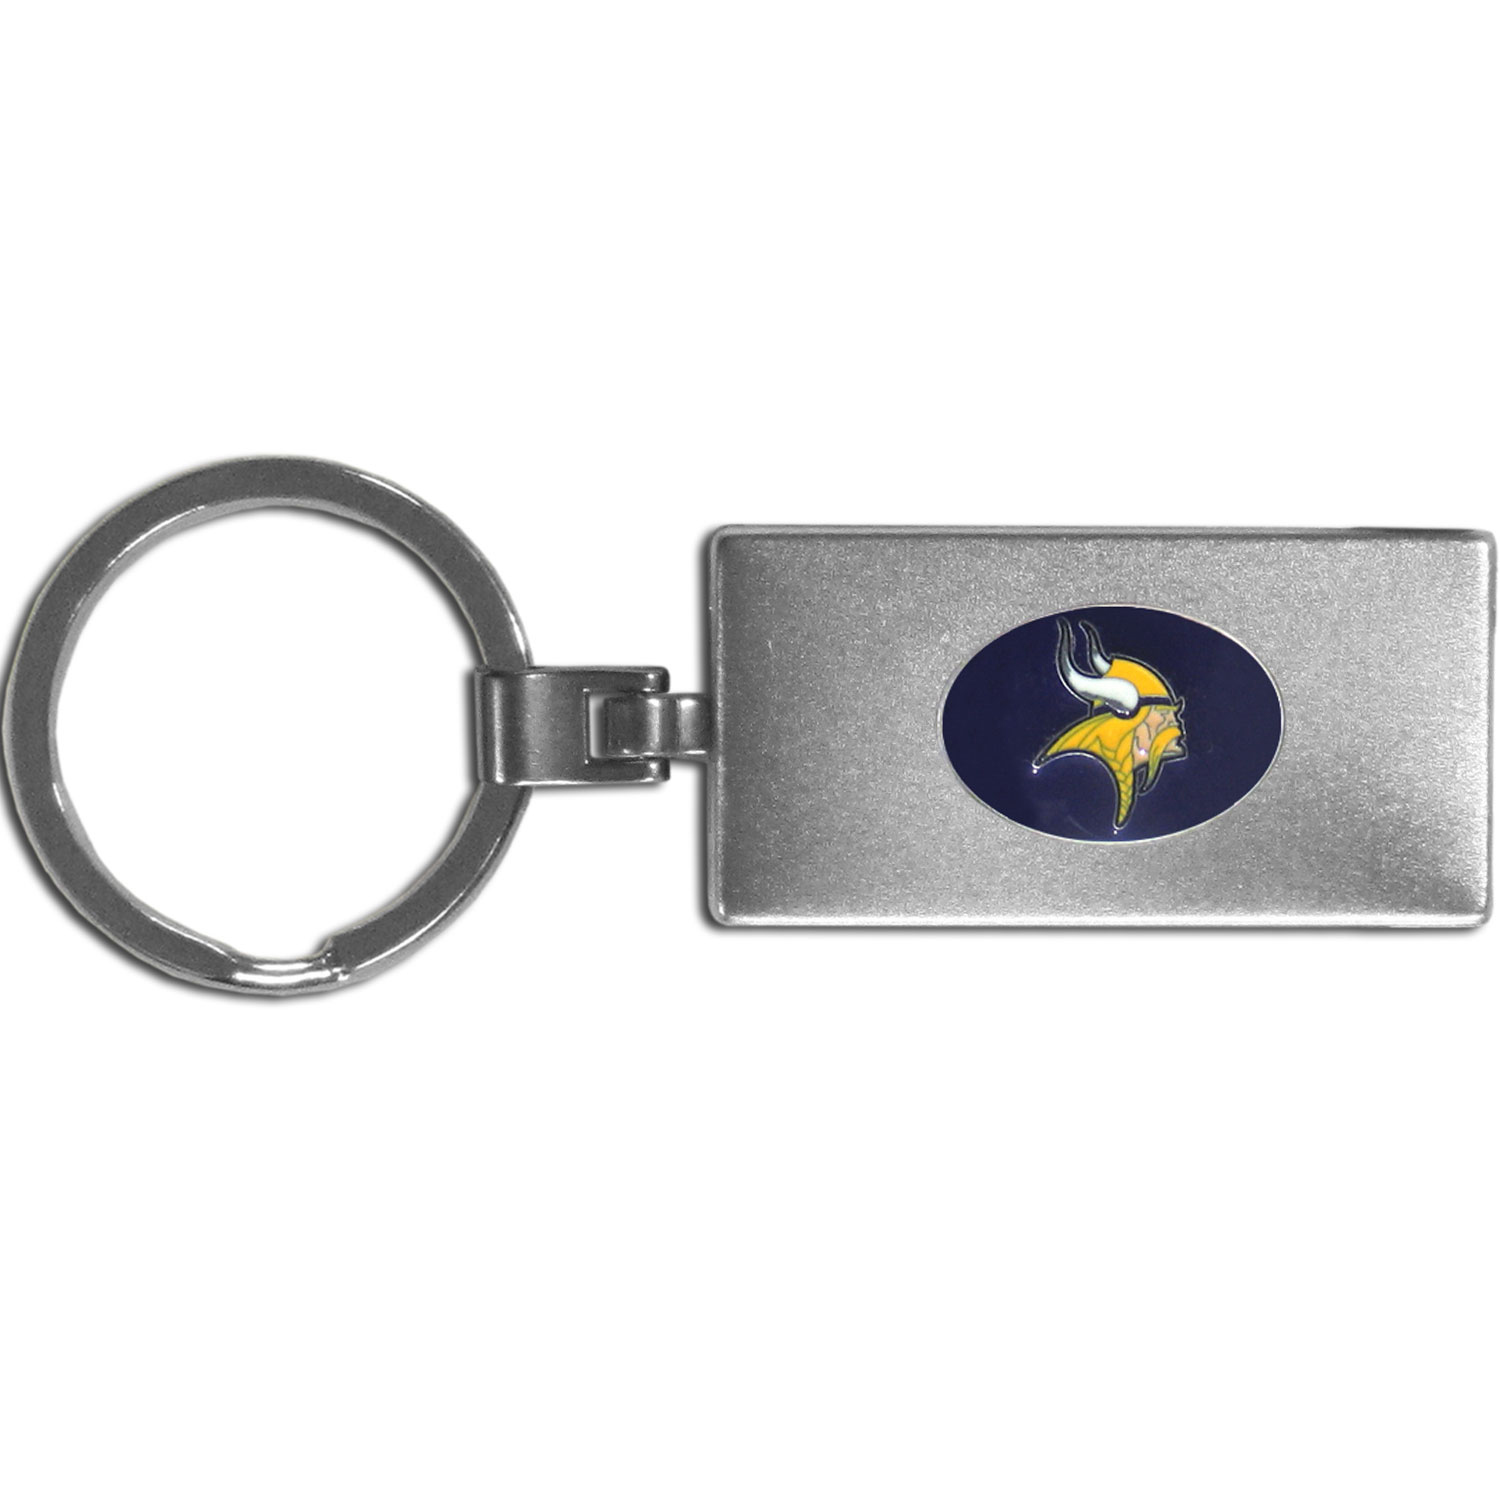 Minnesota Vikings Multi-tool Key Chain - Be the hero at the tailgate, camping, or on a Friday night with your Minnesota Vikings Multi-Tool Keychain which comes complete with bottle opener, scissors, knife, nail file and screw driver. Be it opening a package or a beverage Siskiyou's Multi-Tool Keychain goes wherever your keys do. The keychain hangs at 4 inches long when closed.